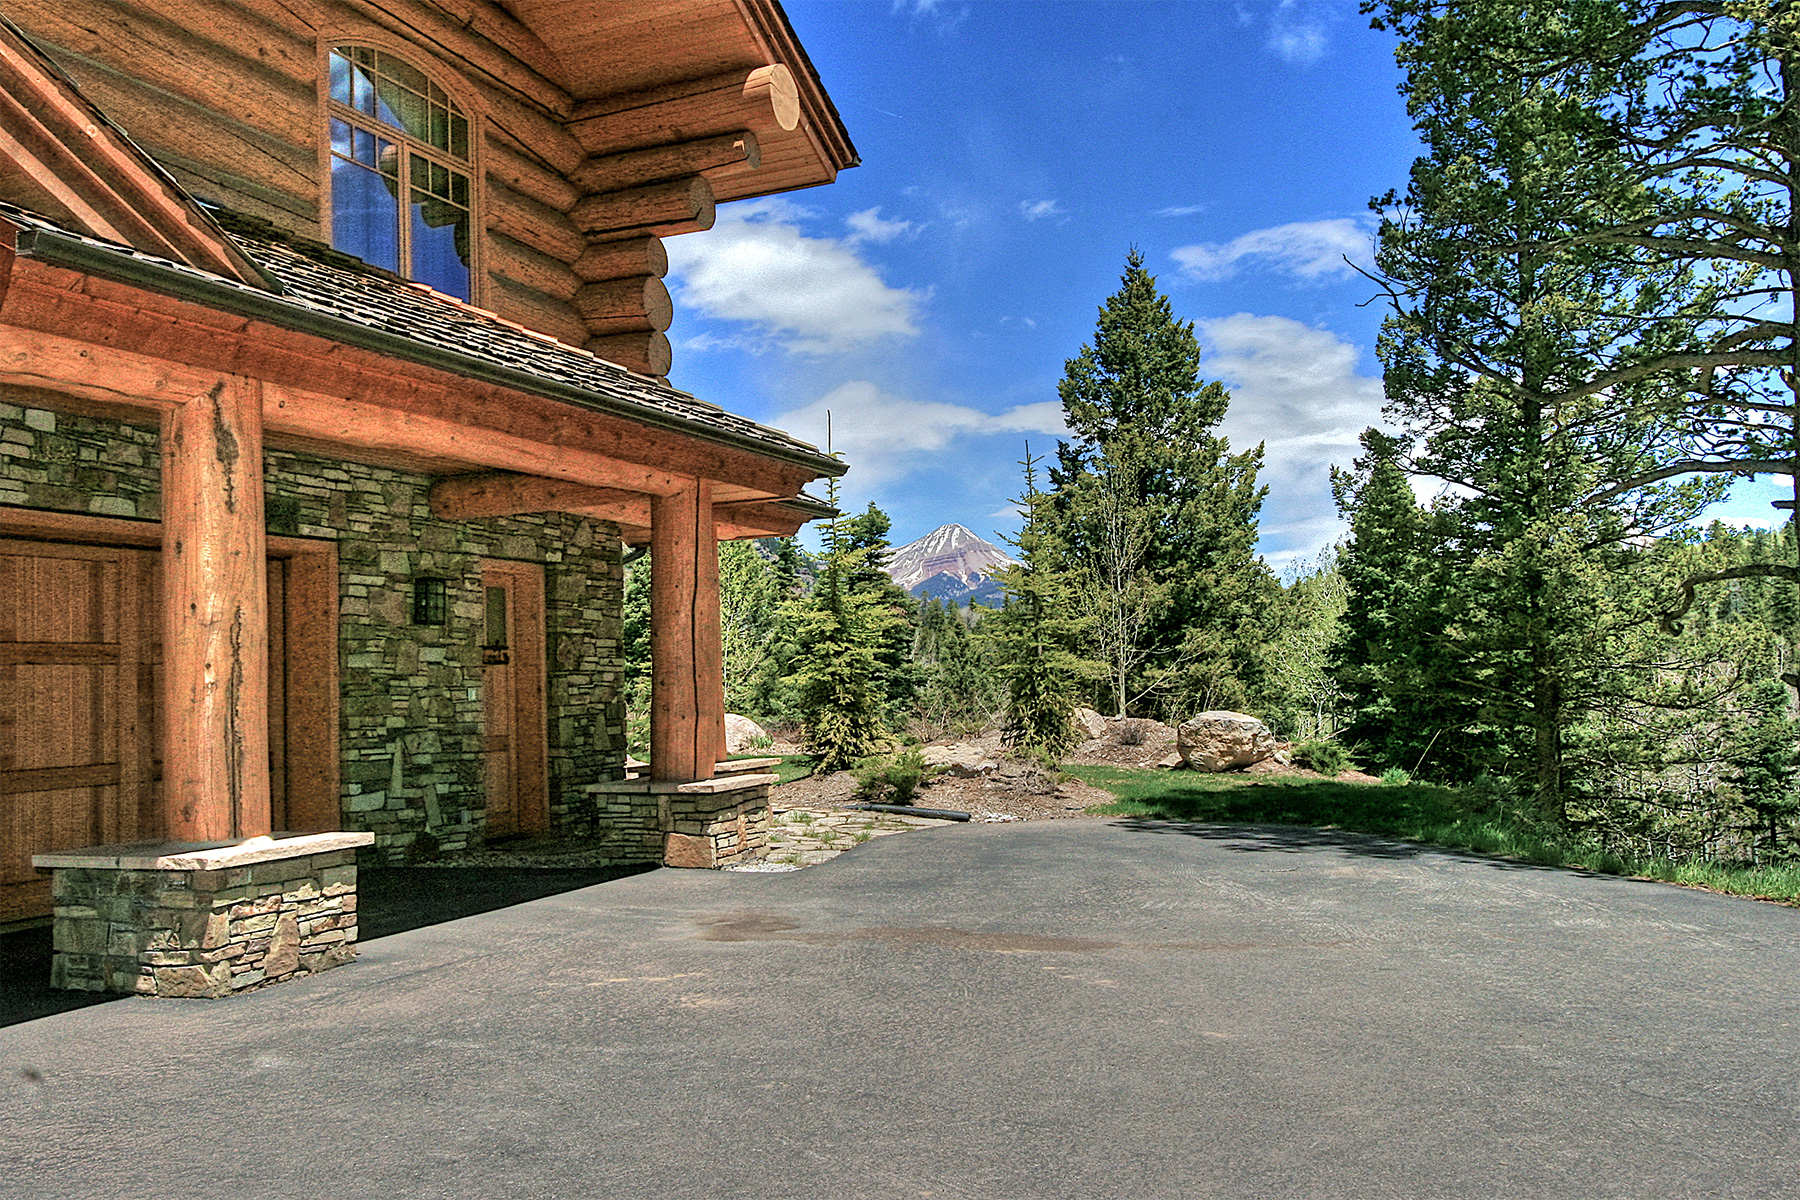 Additional photo for property listing at Mountain View Estate 464 Pinnacle View Drive Durango, Colorado 81301 United States